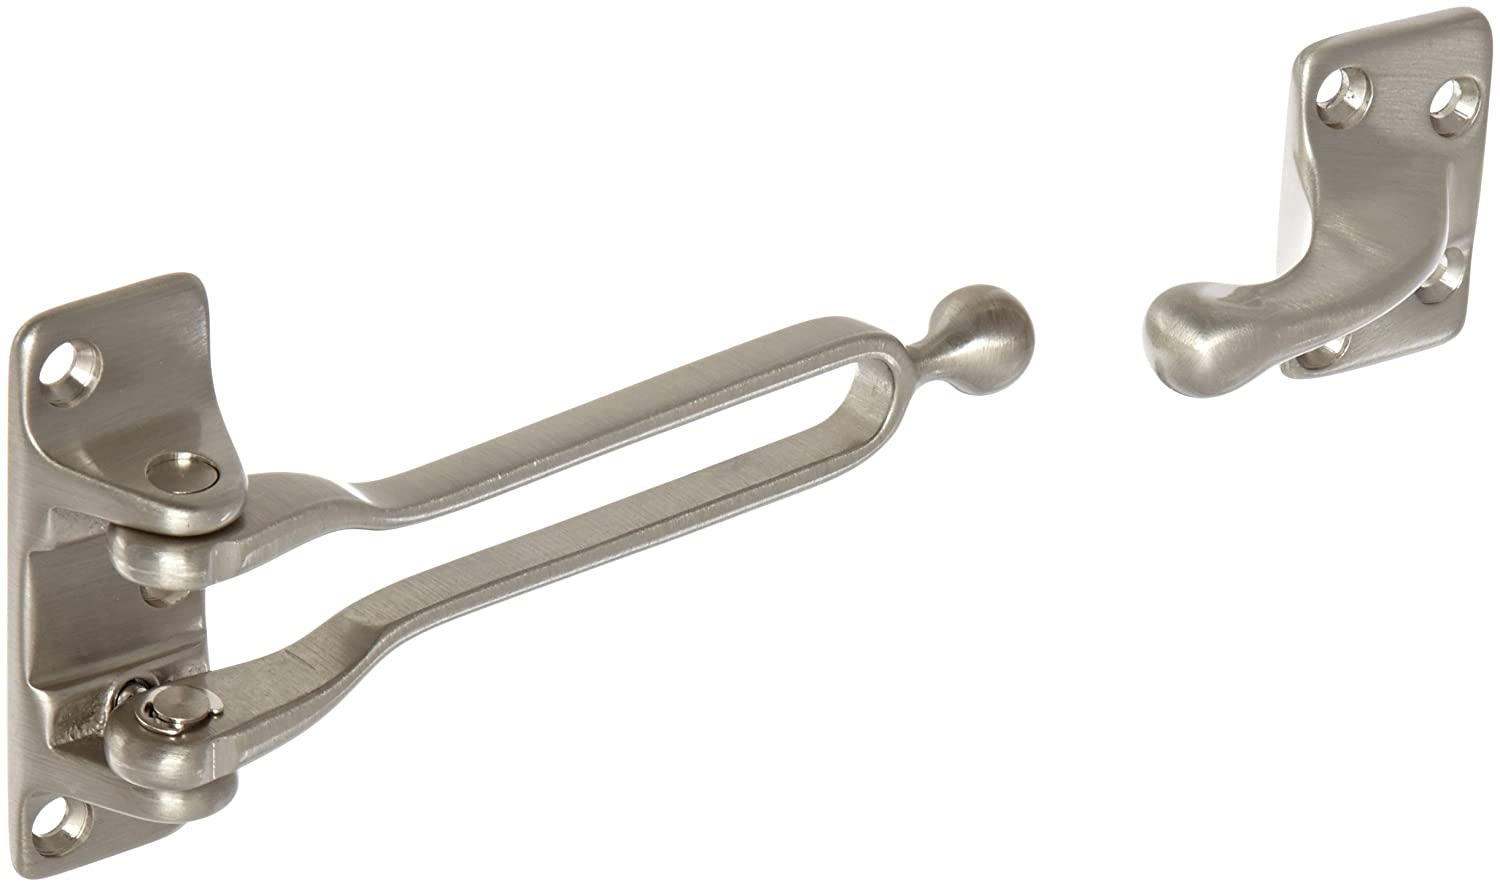 Satin Nickel Plated Clear Coated Finish 1-1//16 Strike Height x 1-1//16 Strike Width 1-1//16 Body Height x 2-9//16 Body Width Rockwood 604.15 Brass Door Guard